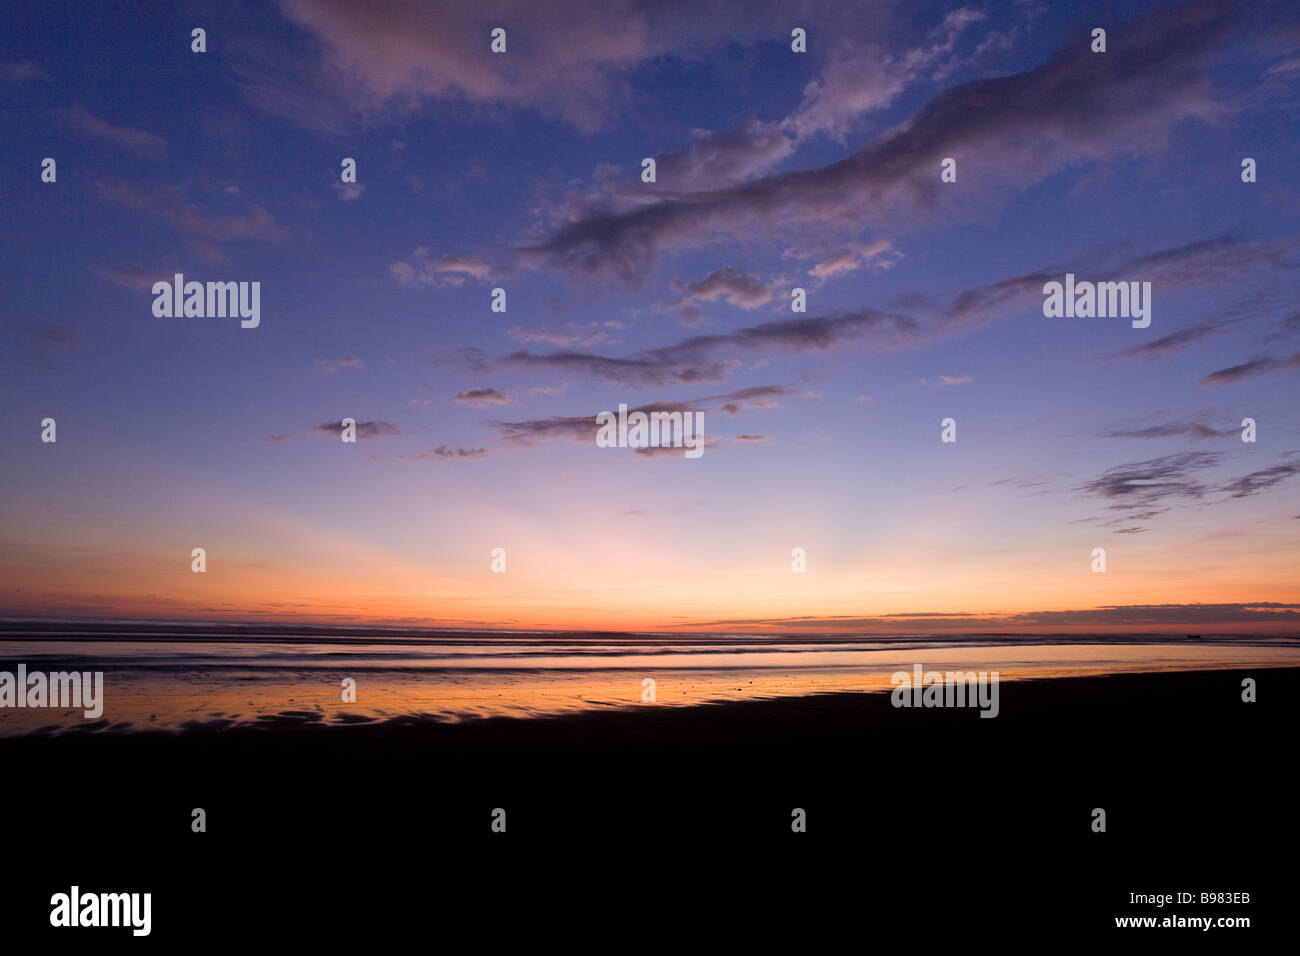 Dramatic sky over the ocean just after sunset in Dominical, Costa Rica. - Stock Image